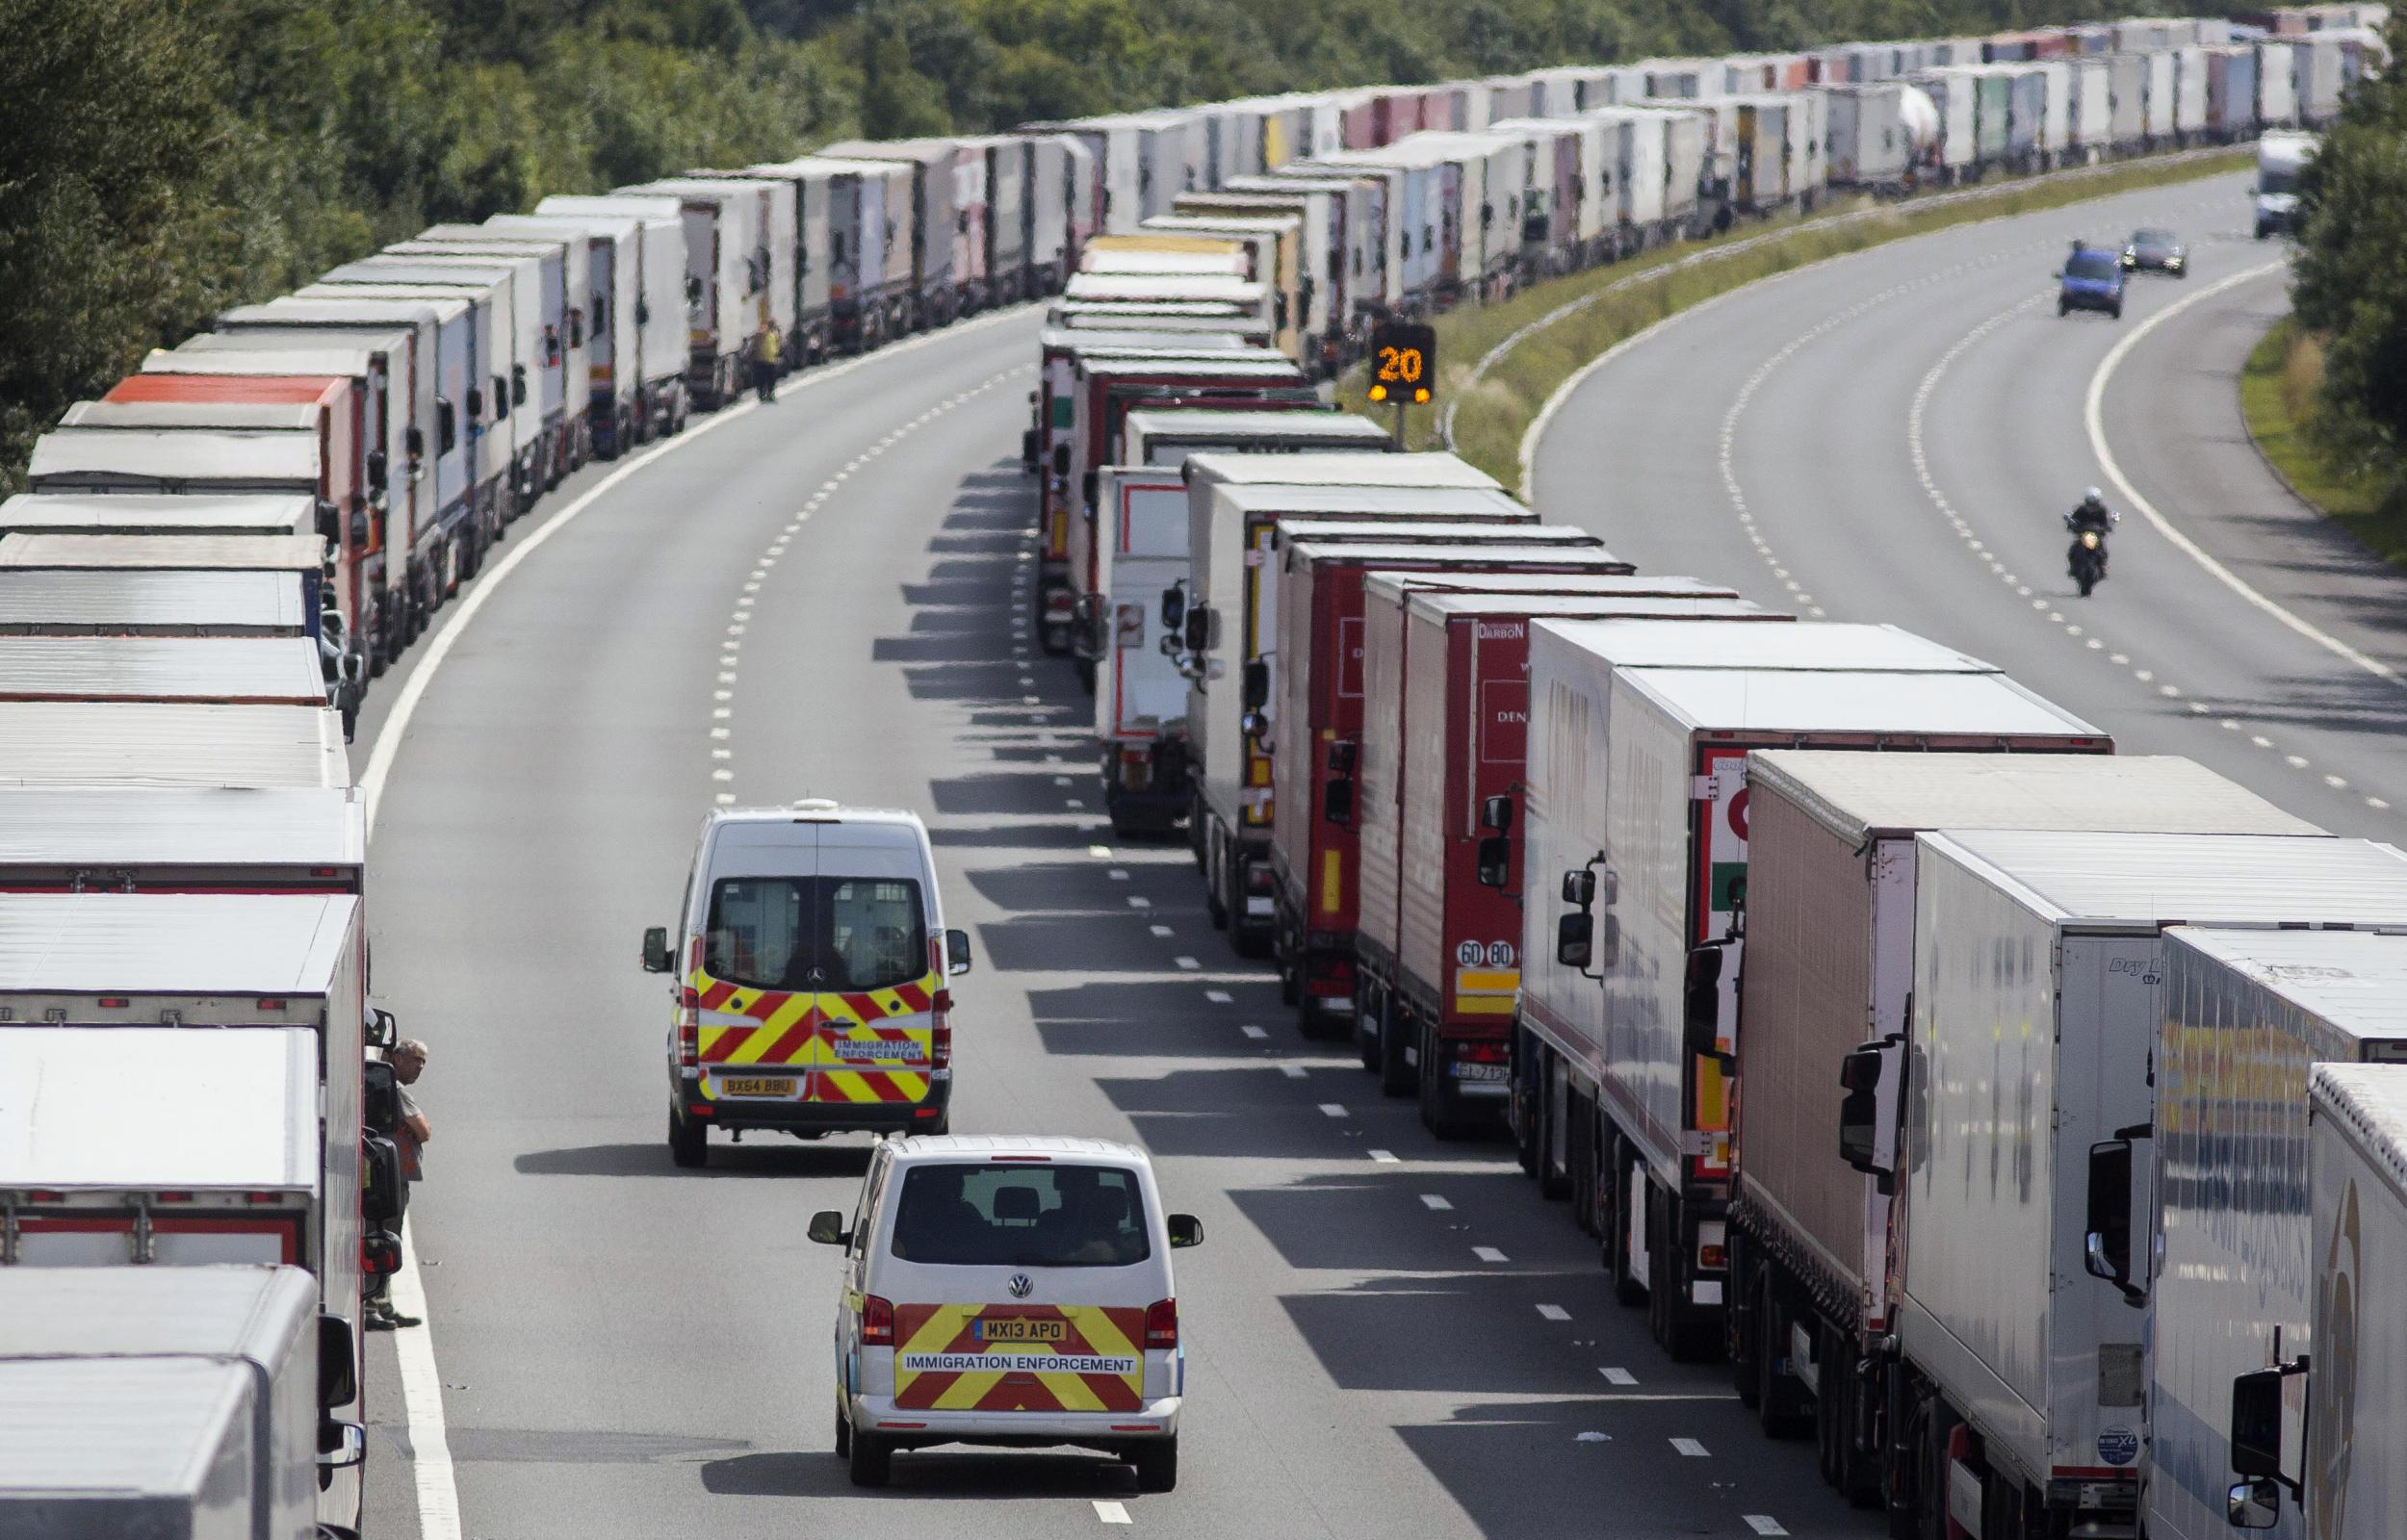 New infrastructure to absorb Channel port disruption will not be ready in time for no-deal Brexit